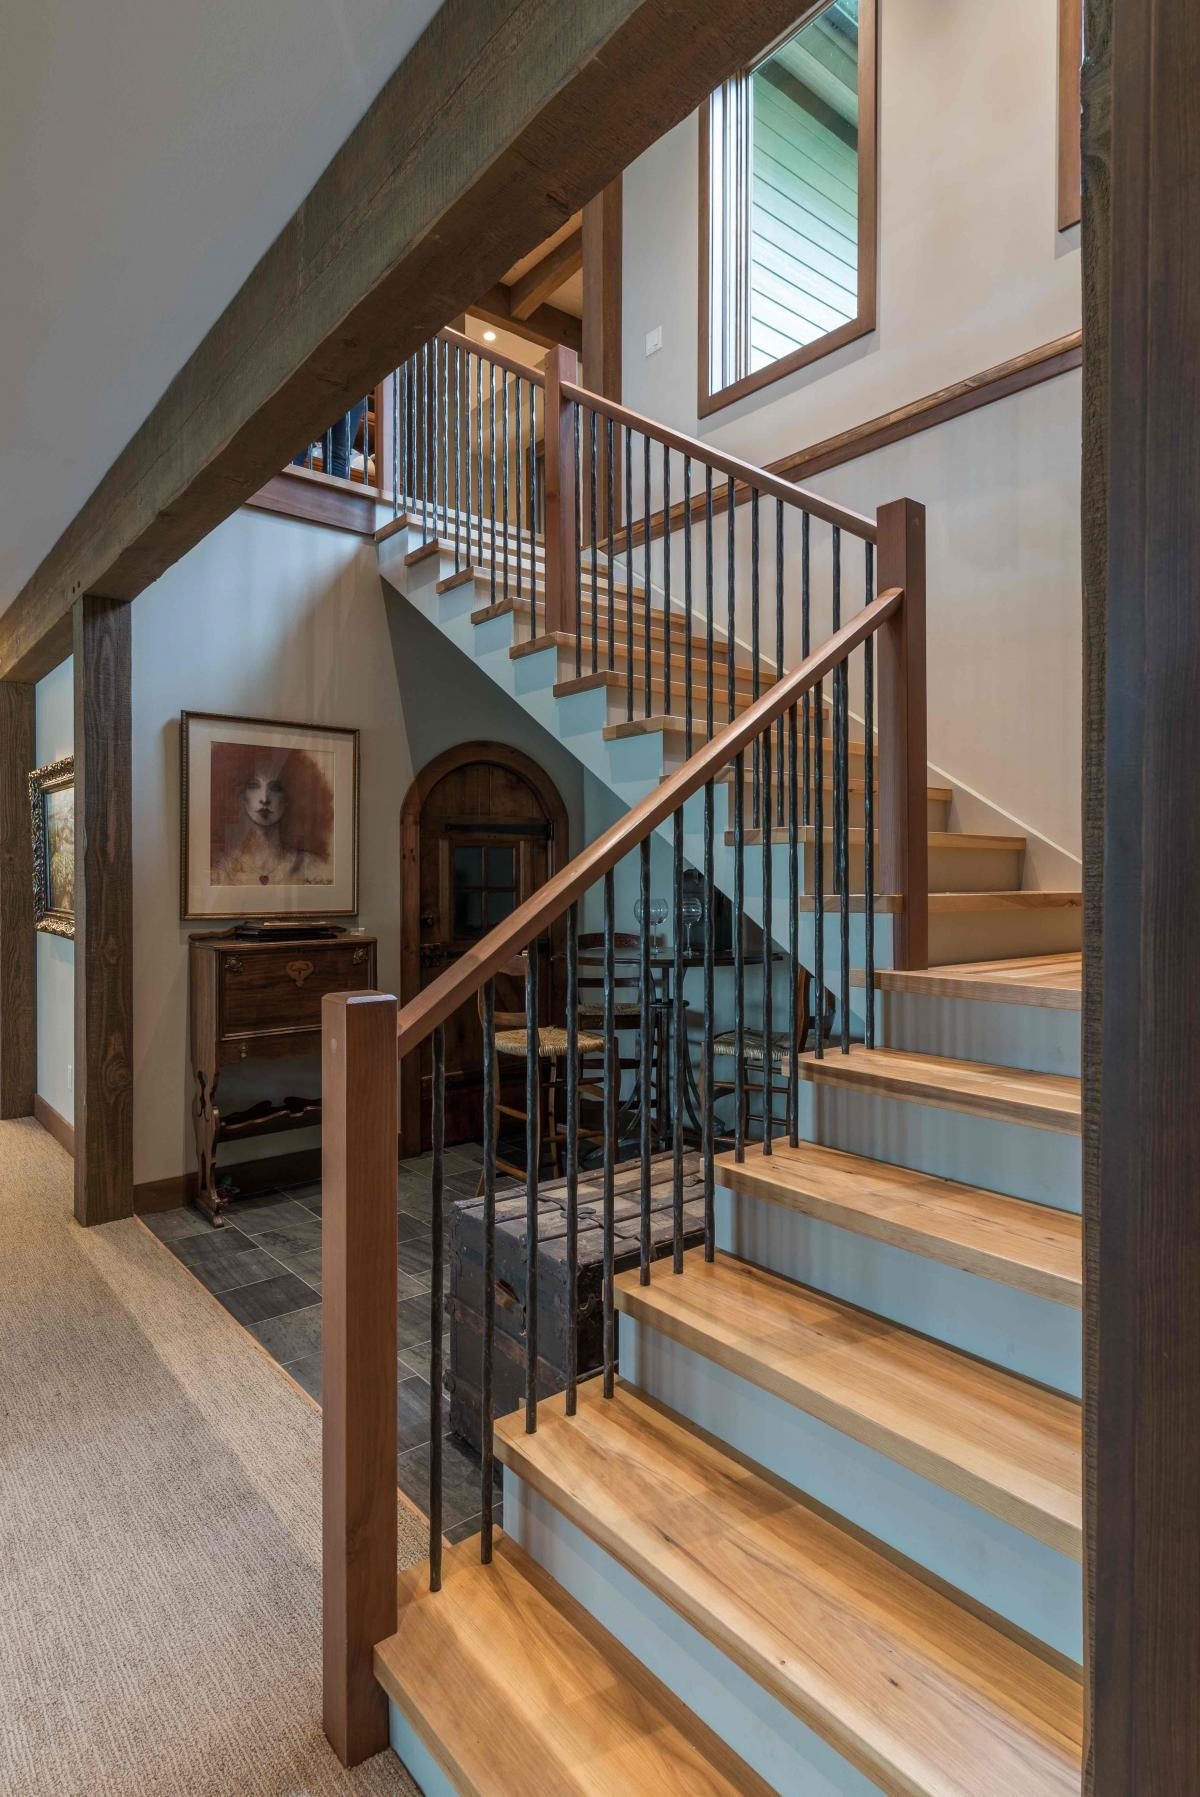 Custom Reclaimed Wooden Stairs And Treads Pioneermillworks | Reclaimed Oak Staircase For Sale | Spindles | Reclaimed Wood Stair Railing | Spiral Staircase | White Oak | Architectural Salvage